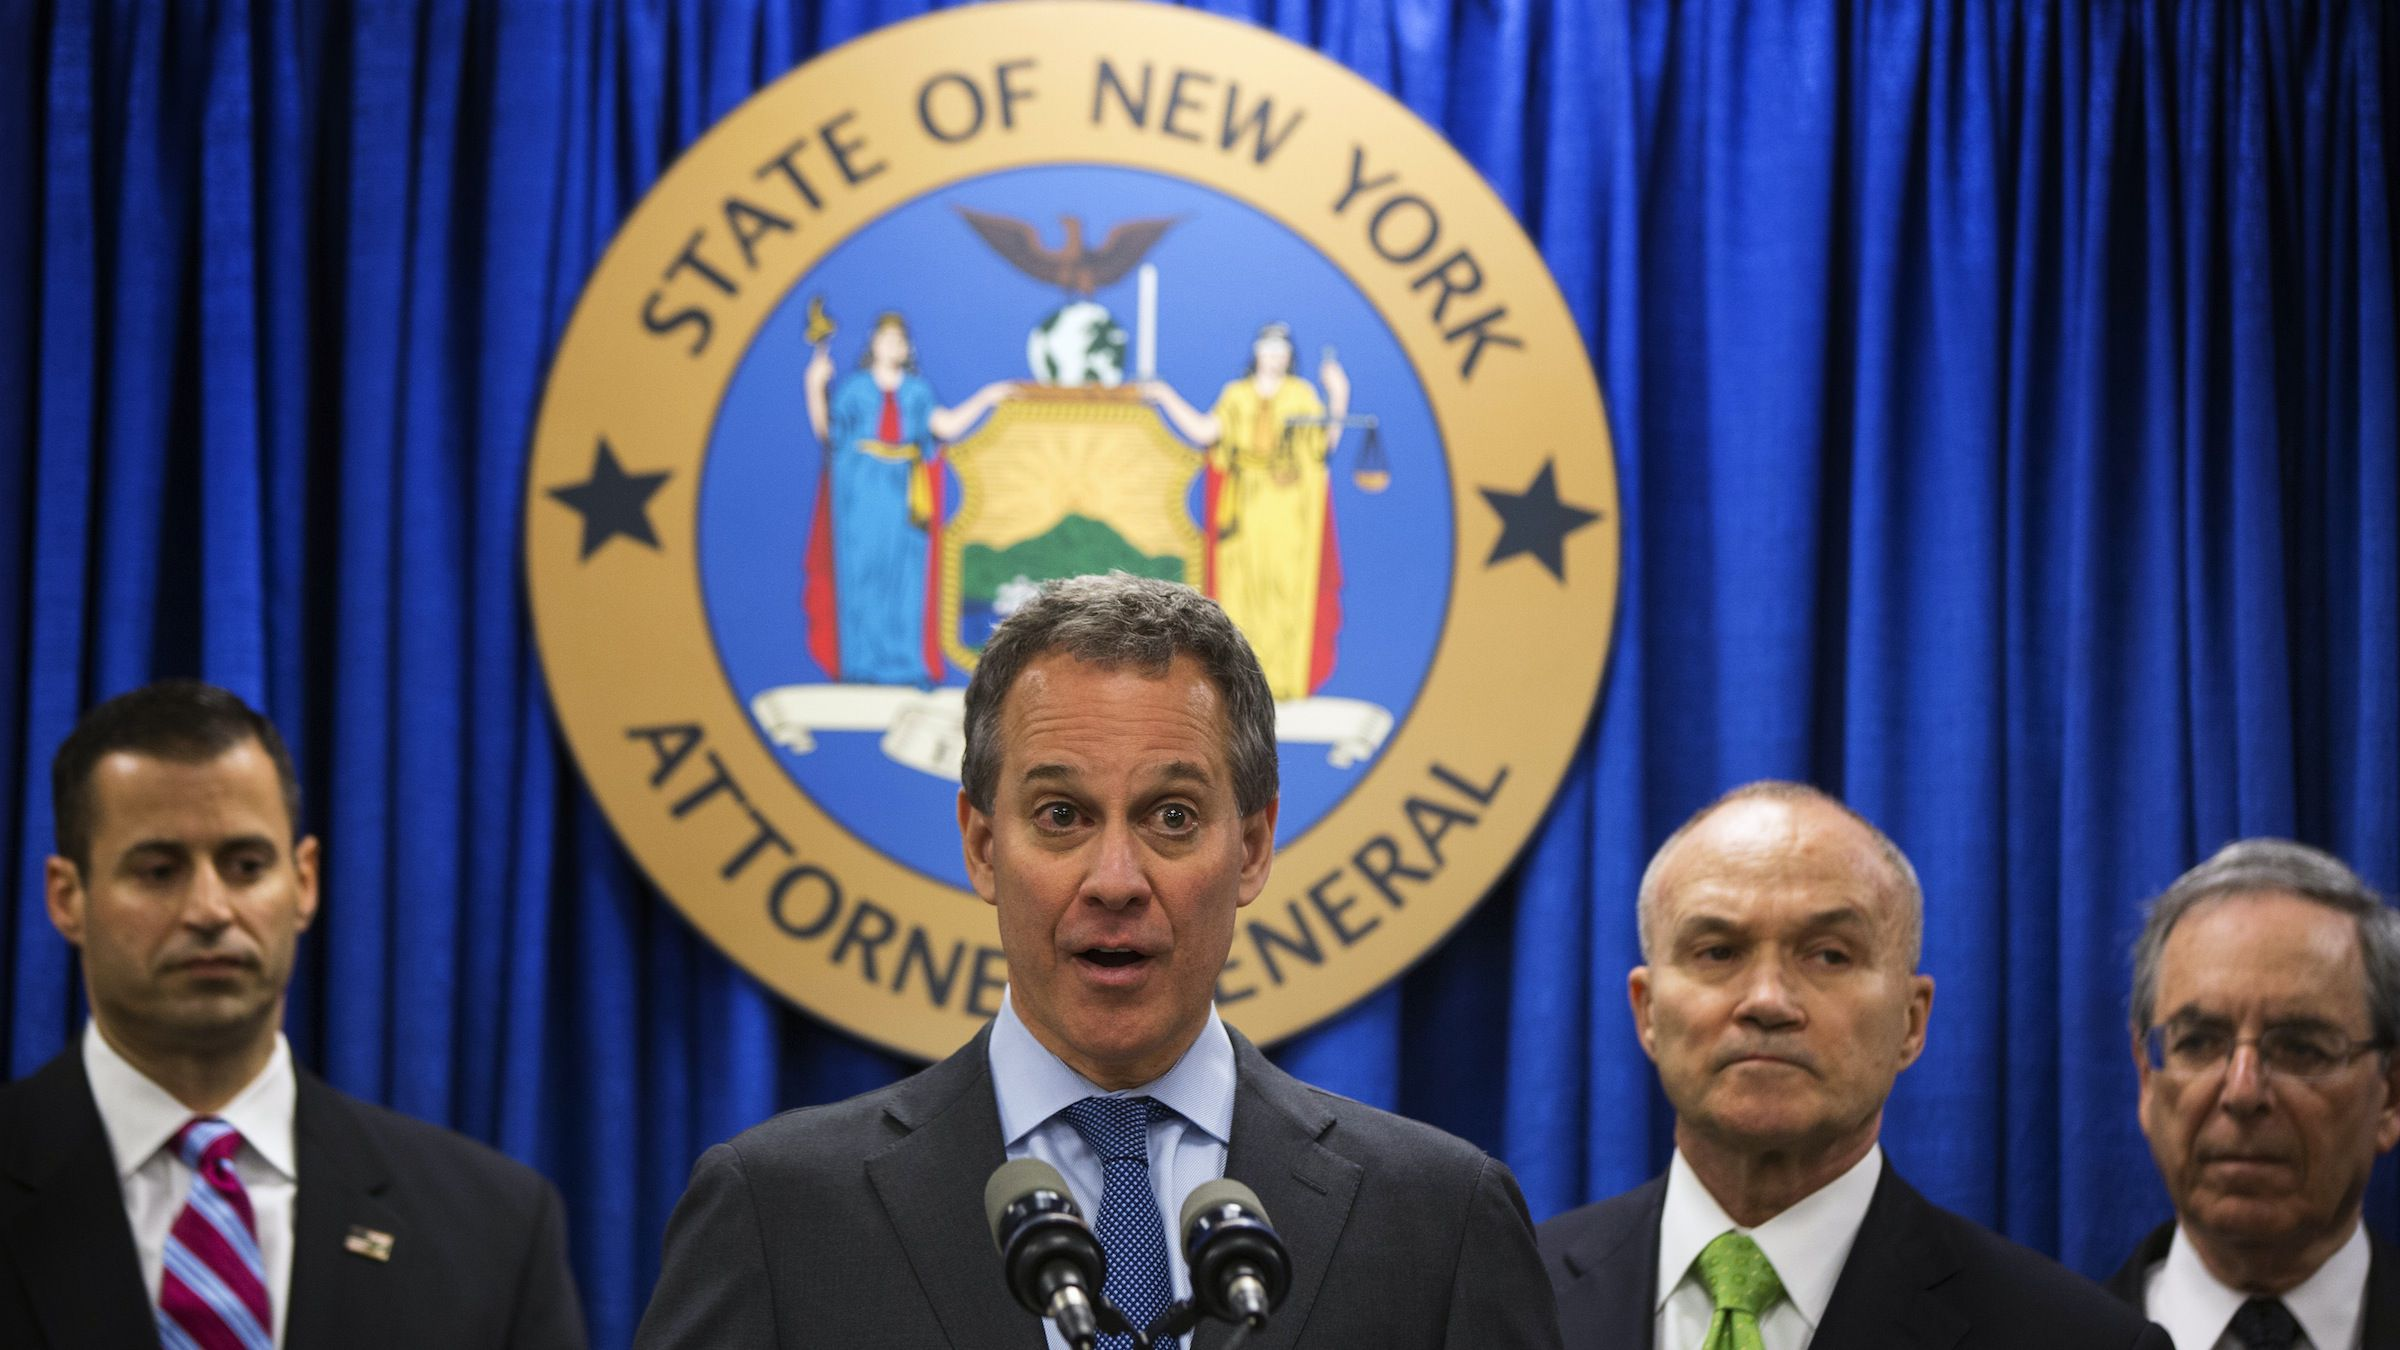 New York Attorney General Eric Schneiderman (C) speaks at a news conference announcing an organized crime task force take down of an unstamped cigarette trafficking ring in New York, May 16, 2013. New York authorities on Thursday announced the arrest of 16 people in a cigarette smuggling ring that included three men who had been under scrutiny because of suspected links to Islamic militant groups, a law enforcement official said. REUTERS/Lucas Jackson (UNITED STATES - Tags: CRIME LAW) - RTXZPMY